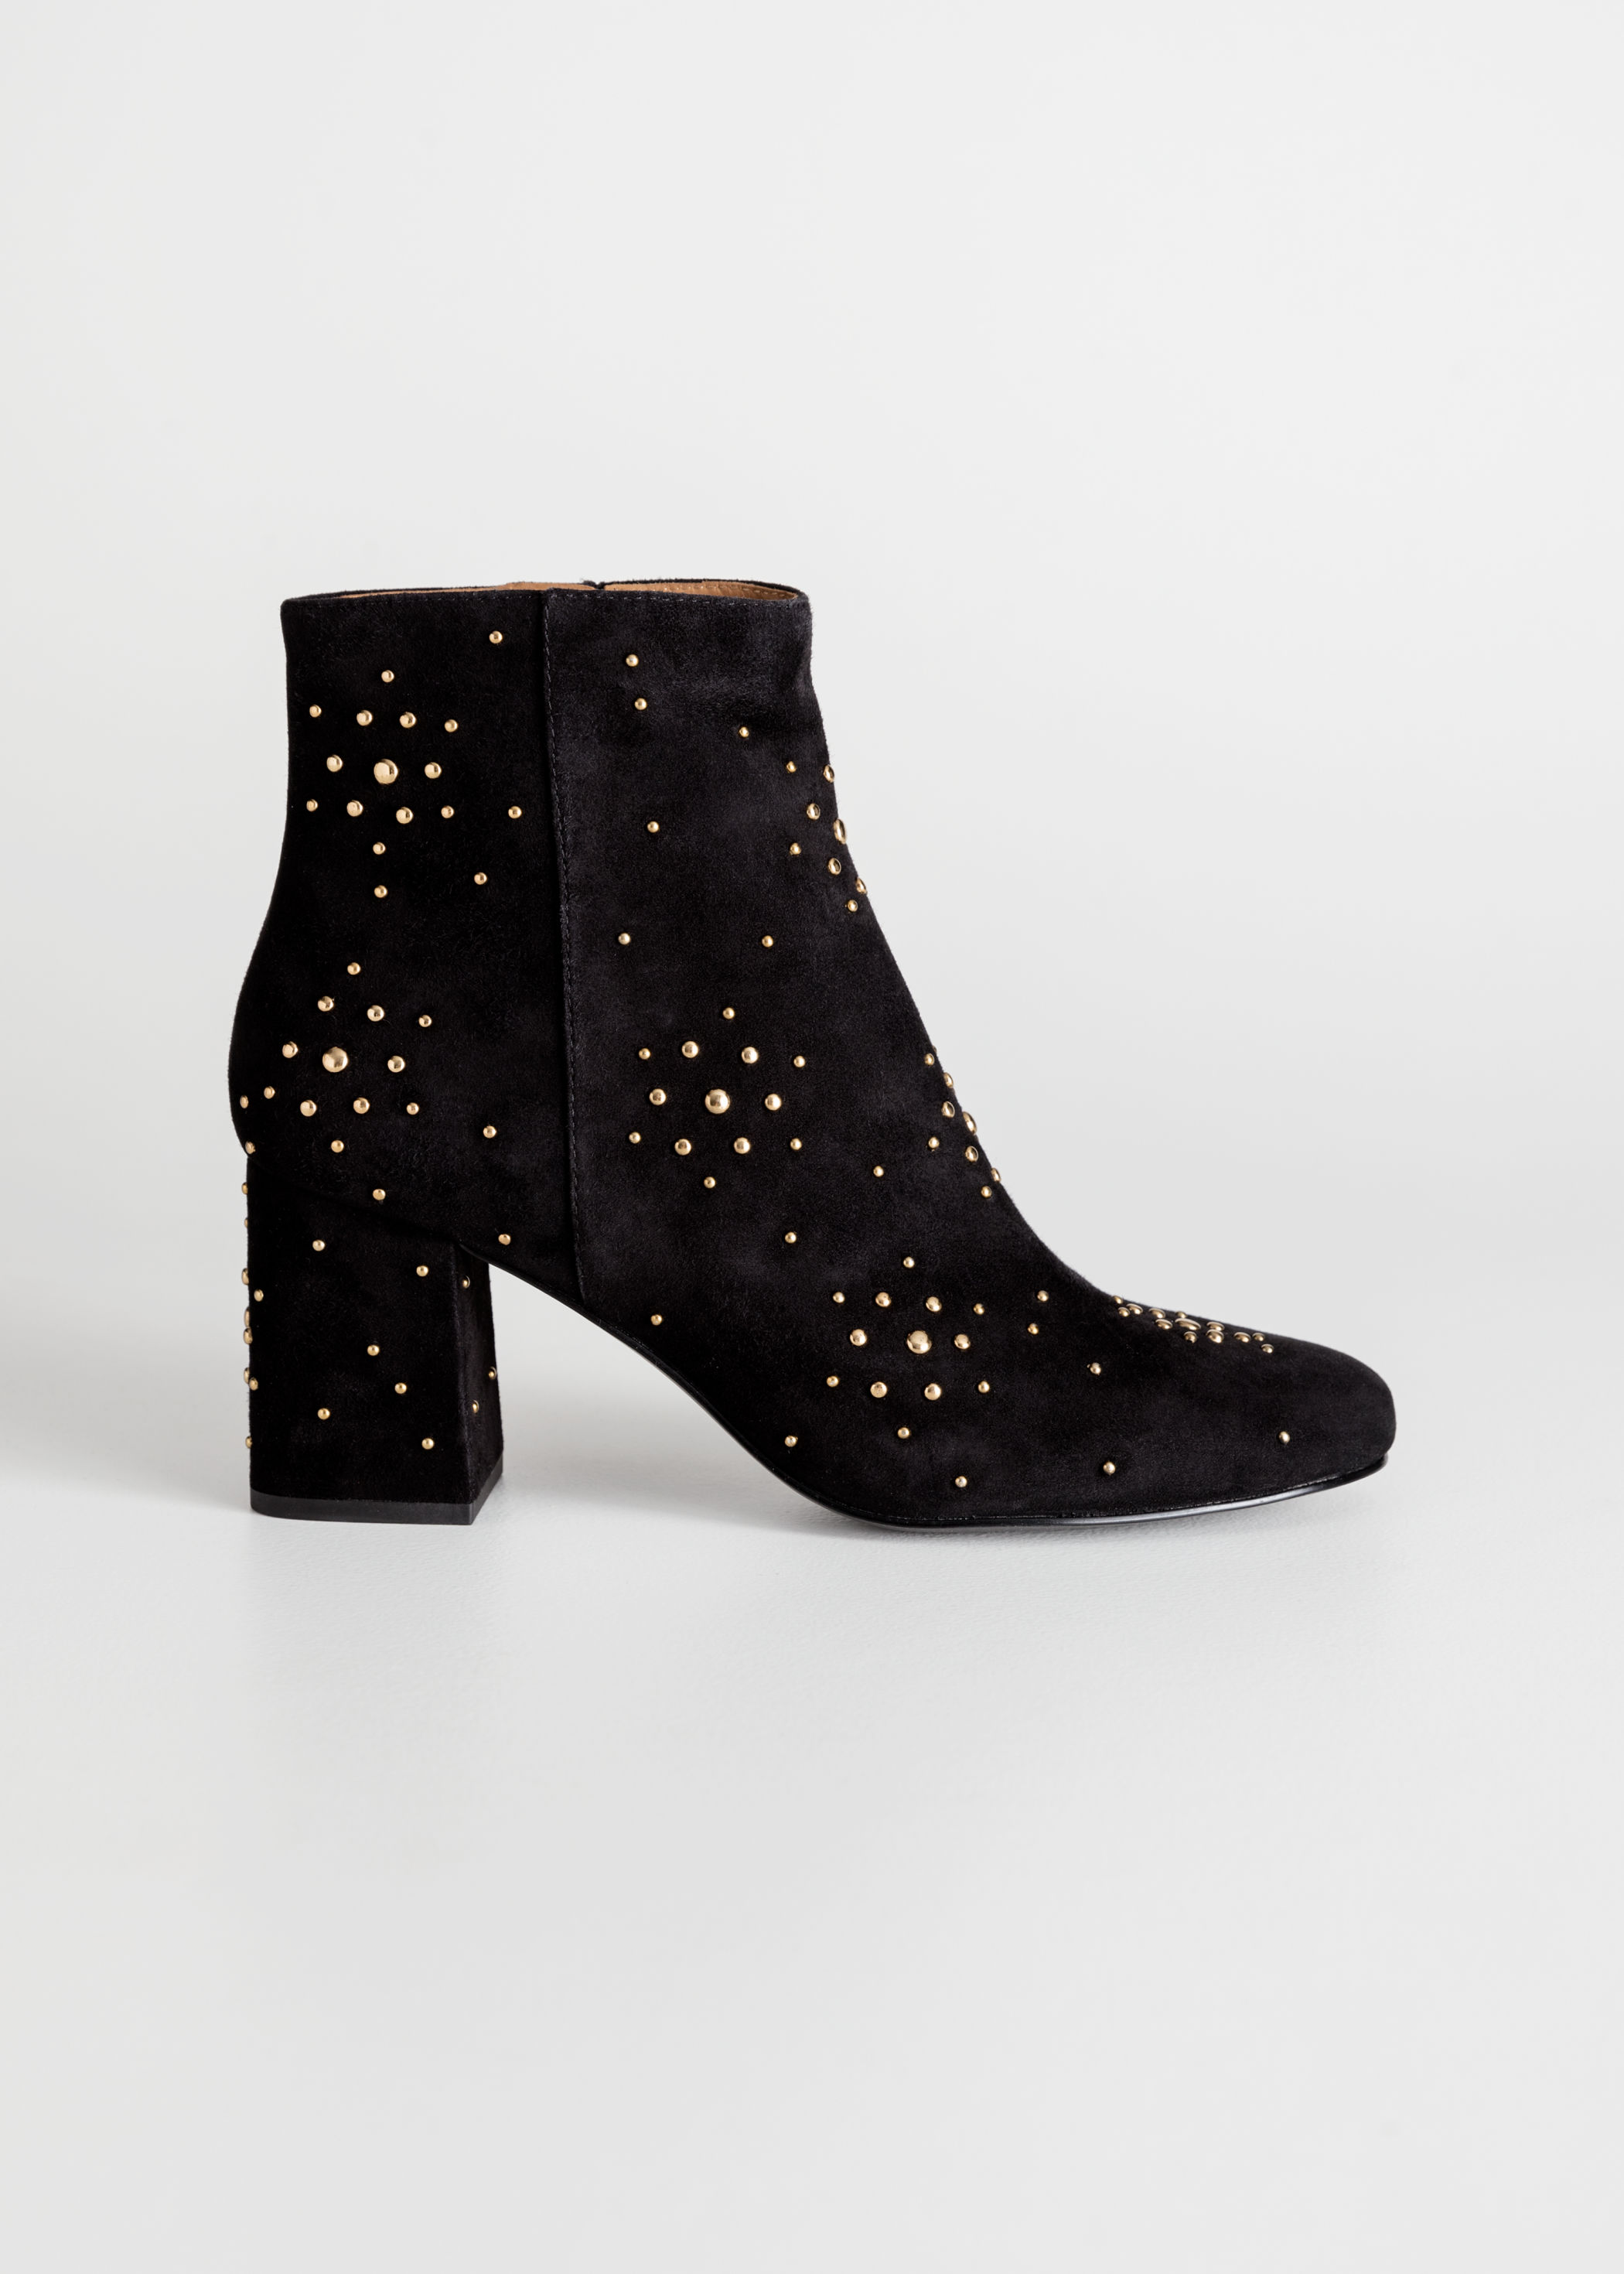 66a2fc4697e46 Dome Studded Suede Boots | Endource